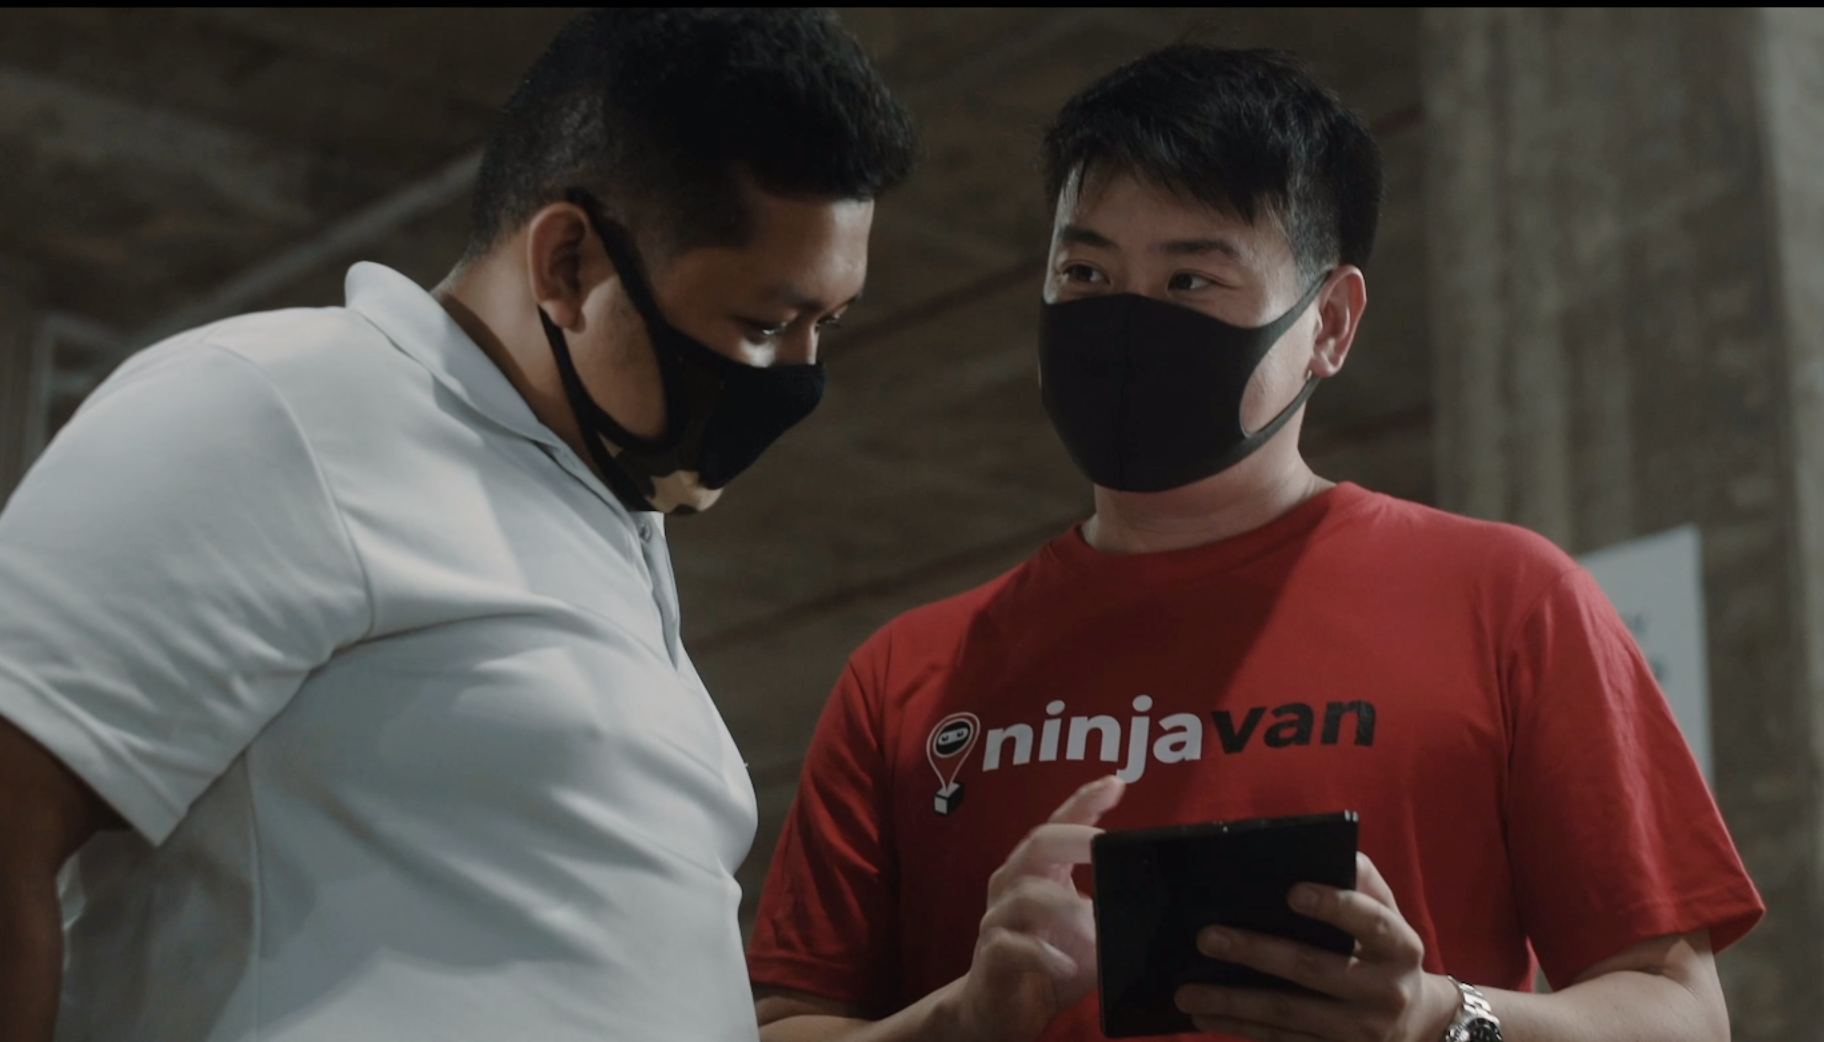 Why The Samsung Galaxy Z Fold2 is Indispensable For Ninja Van CEO Lai Chang Wen